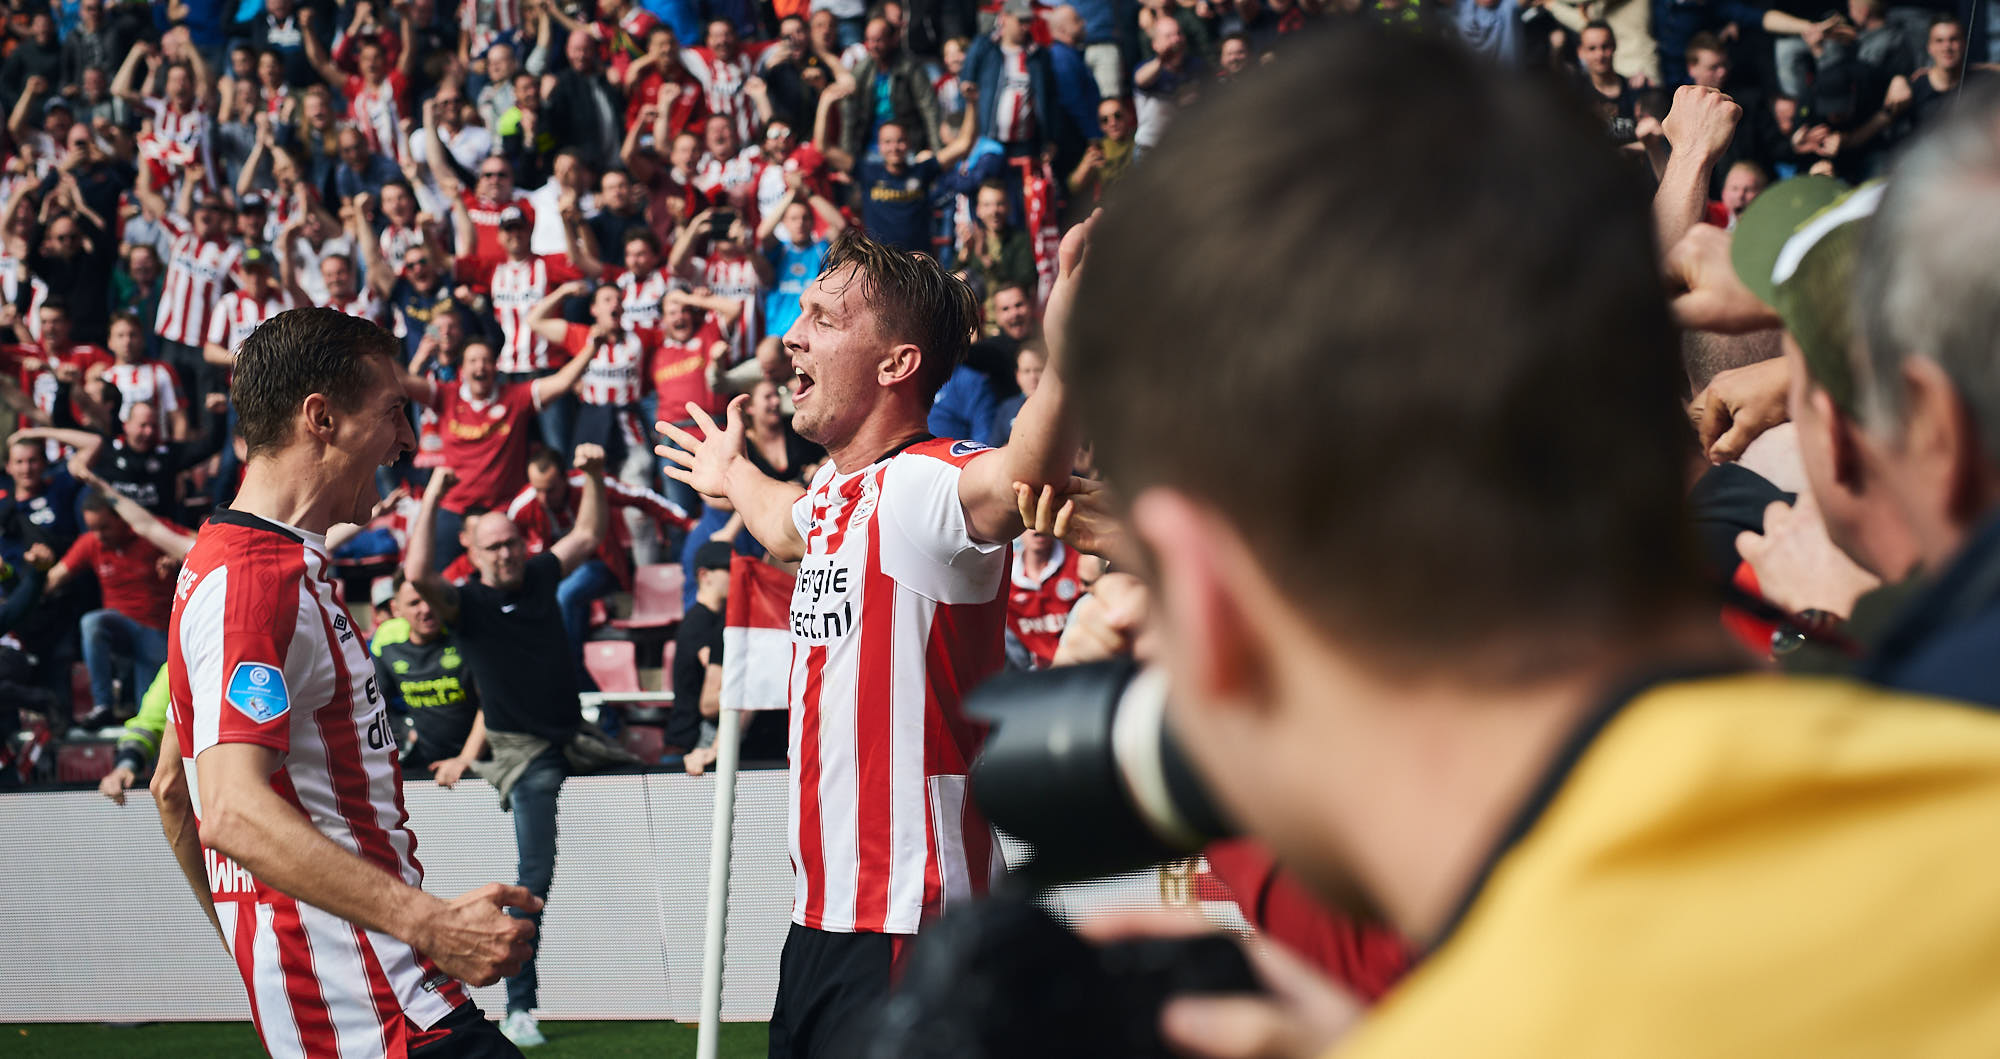 PSV Striker Luuk de Jong after having scored a goal against Ajax